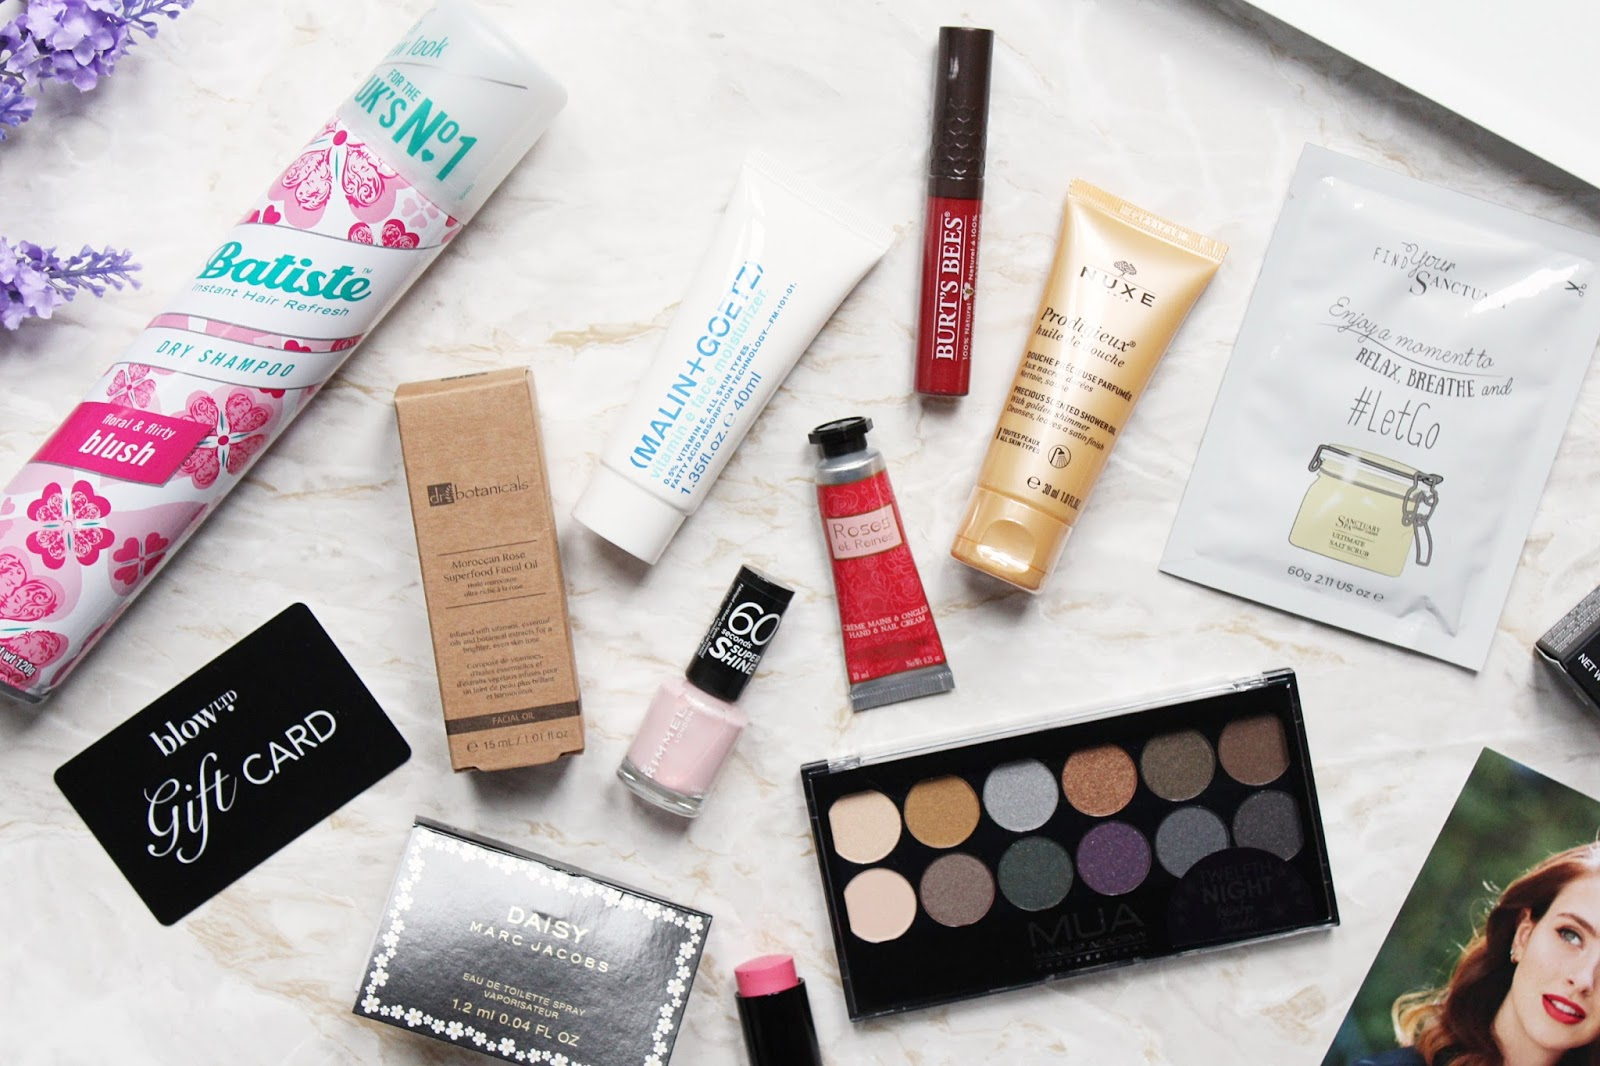 Latest in Beauty Date Night Box